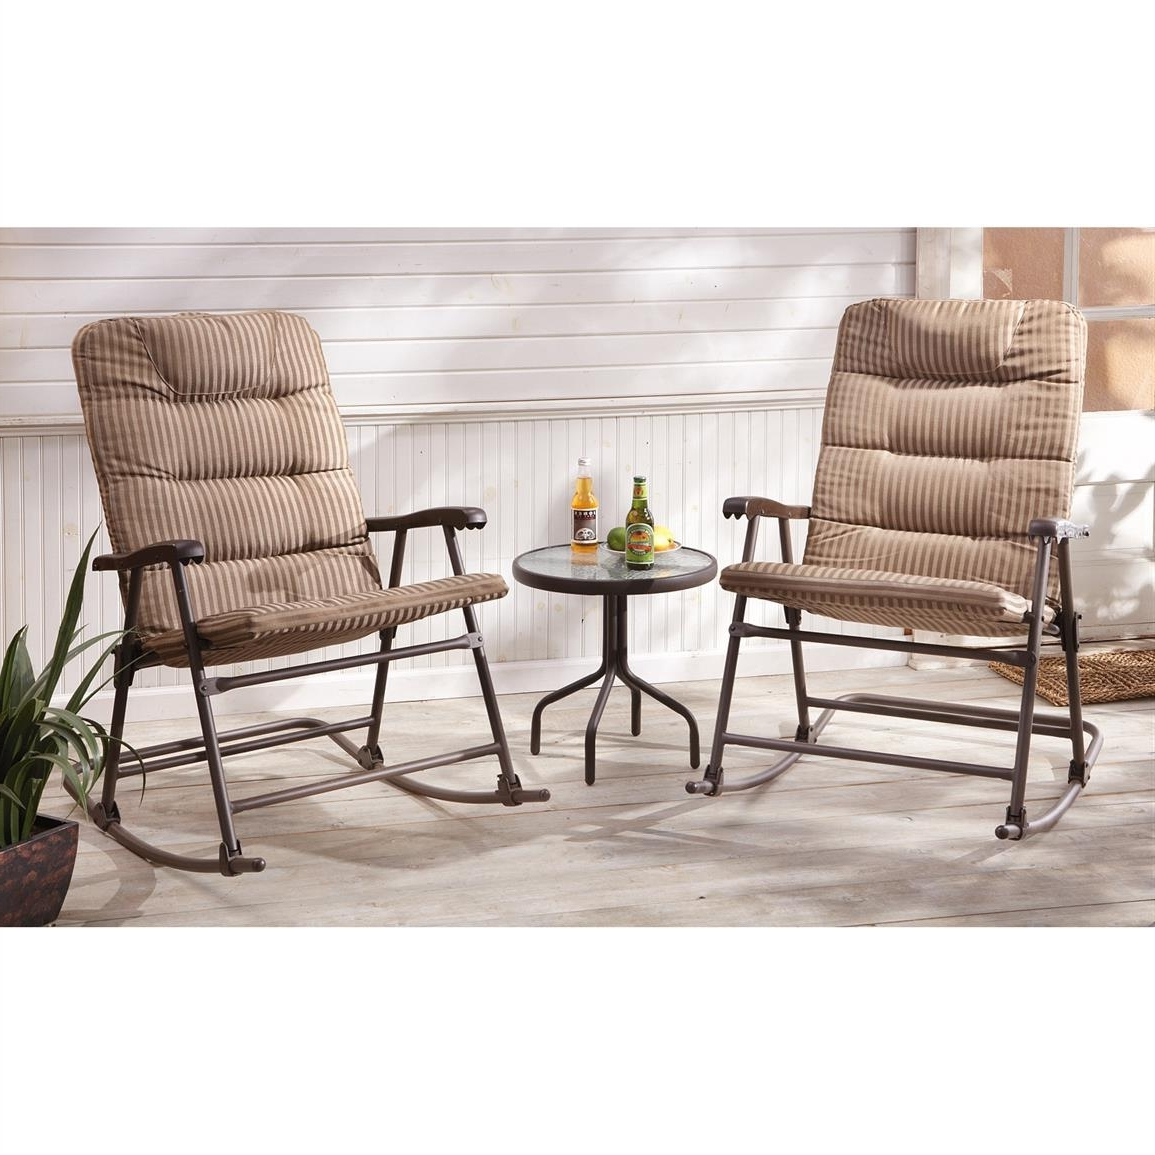 Most Recent Castlecreek Padded Outdoor Rocking Chair Set Piece Oversized Chairs In Padded Patio Rocking Chairs (View 8 of 15)